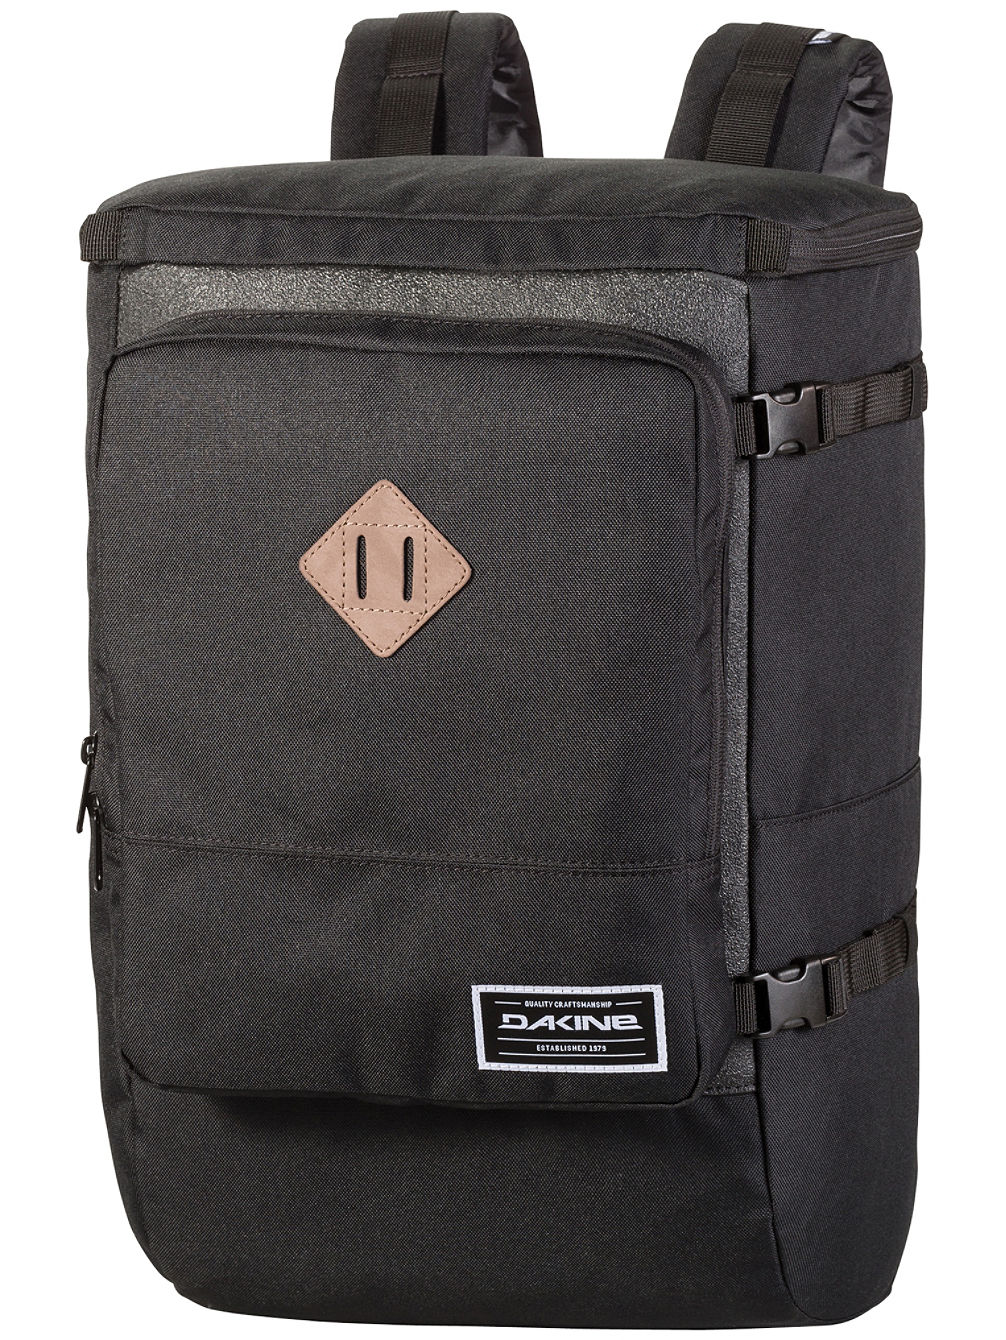 Park 32L Backpack